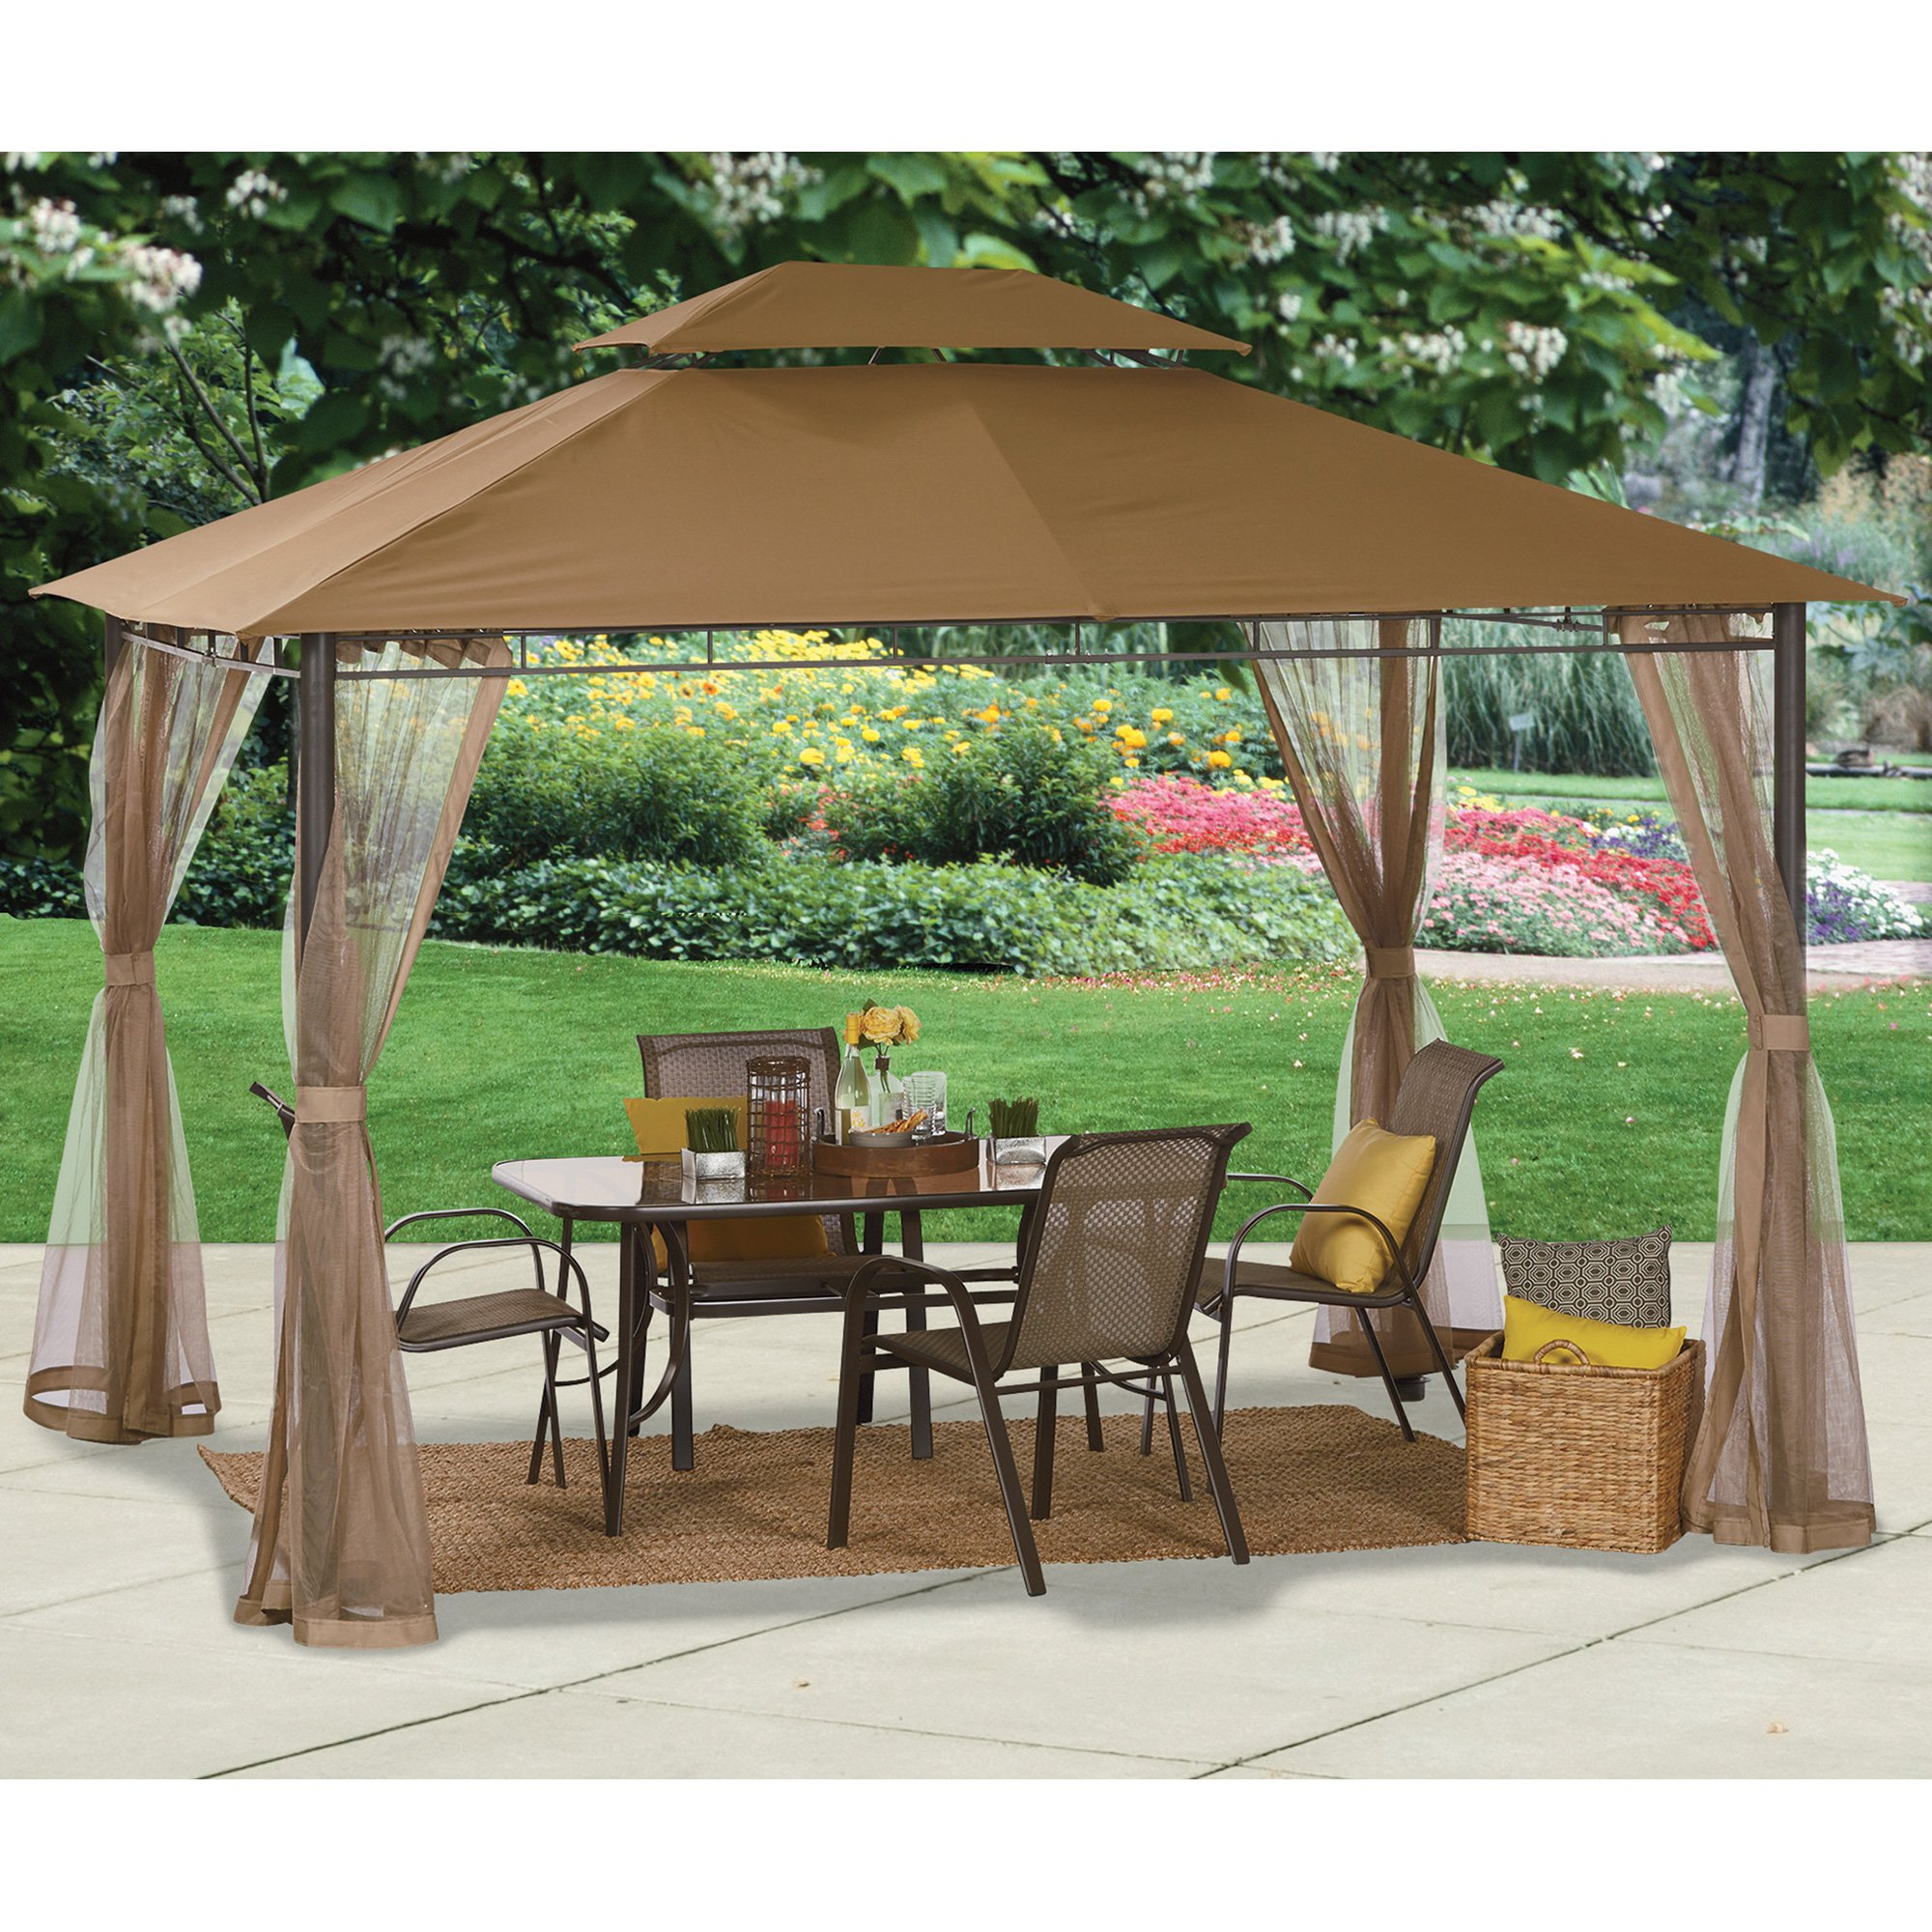 deluxe patio gazebo tent - 10ft. x 12ft.